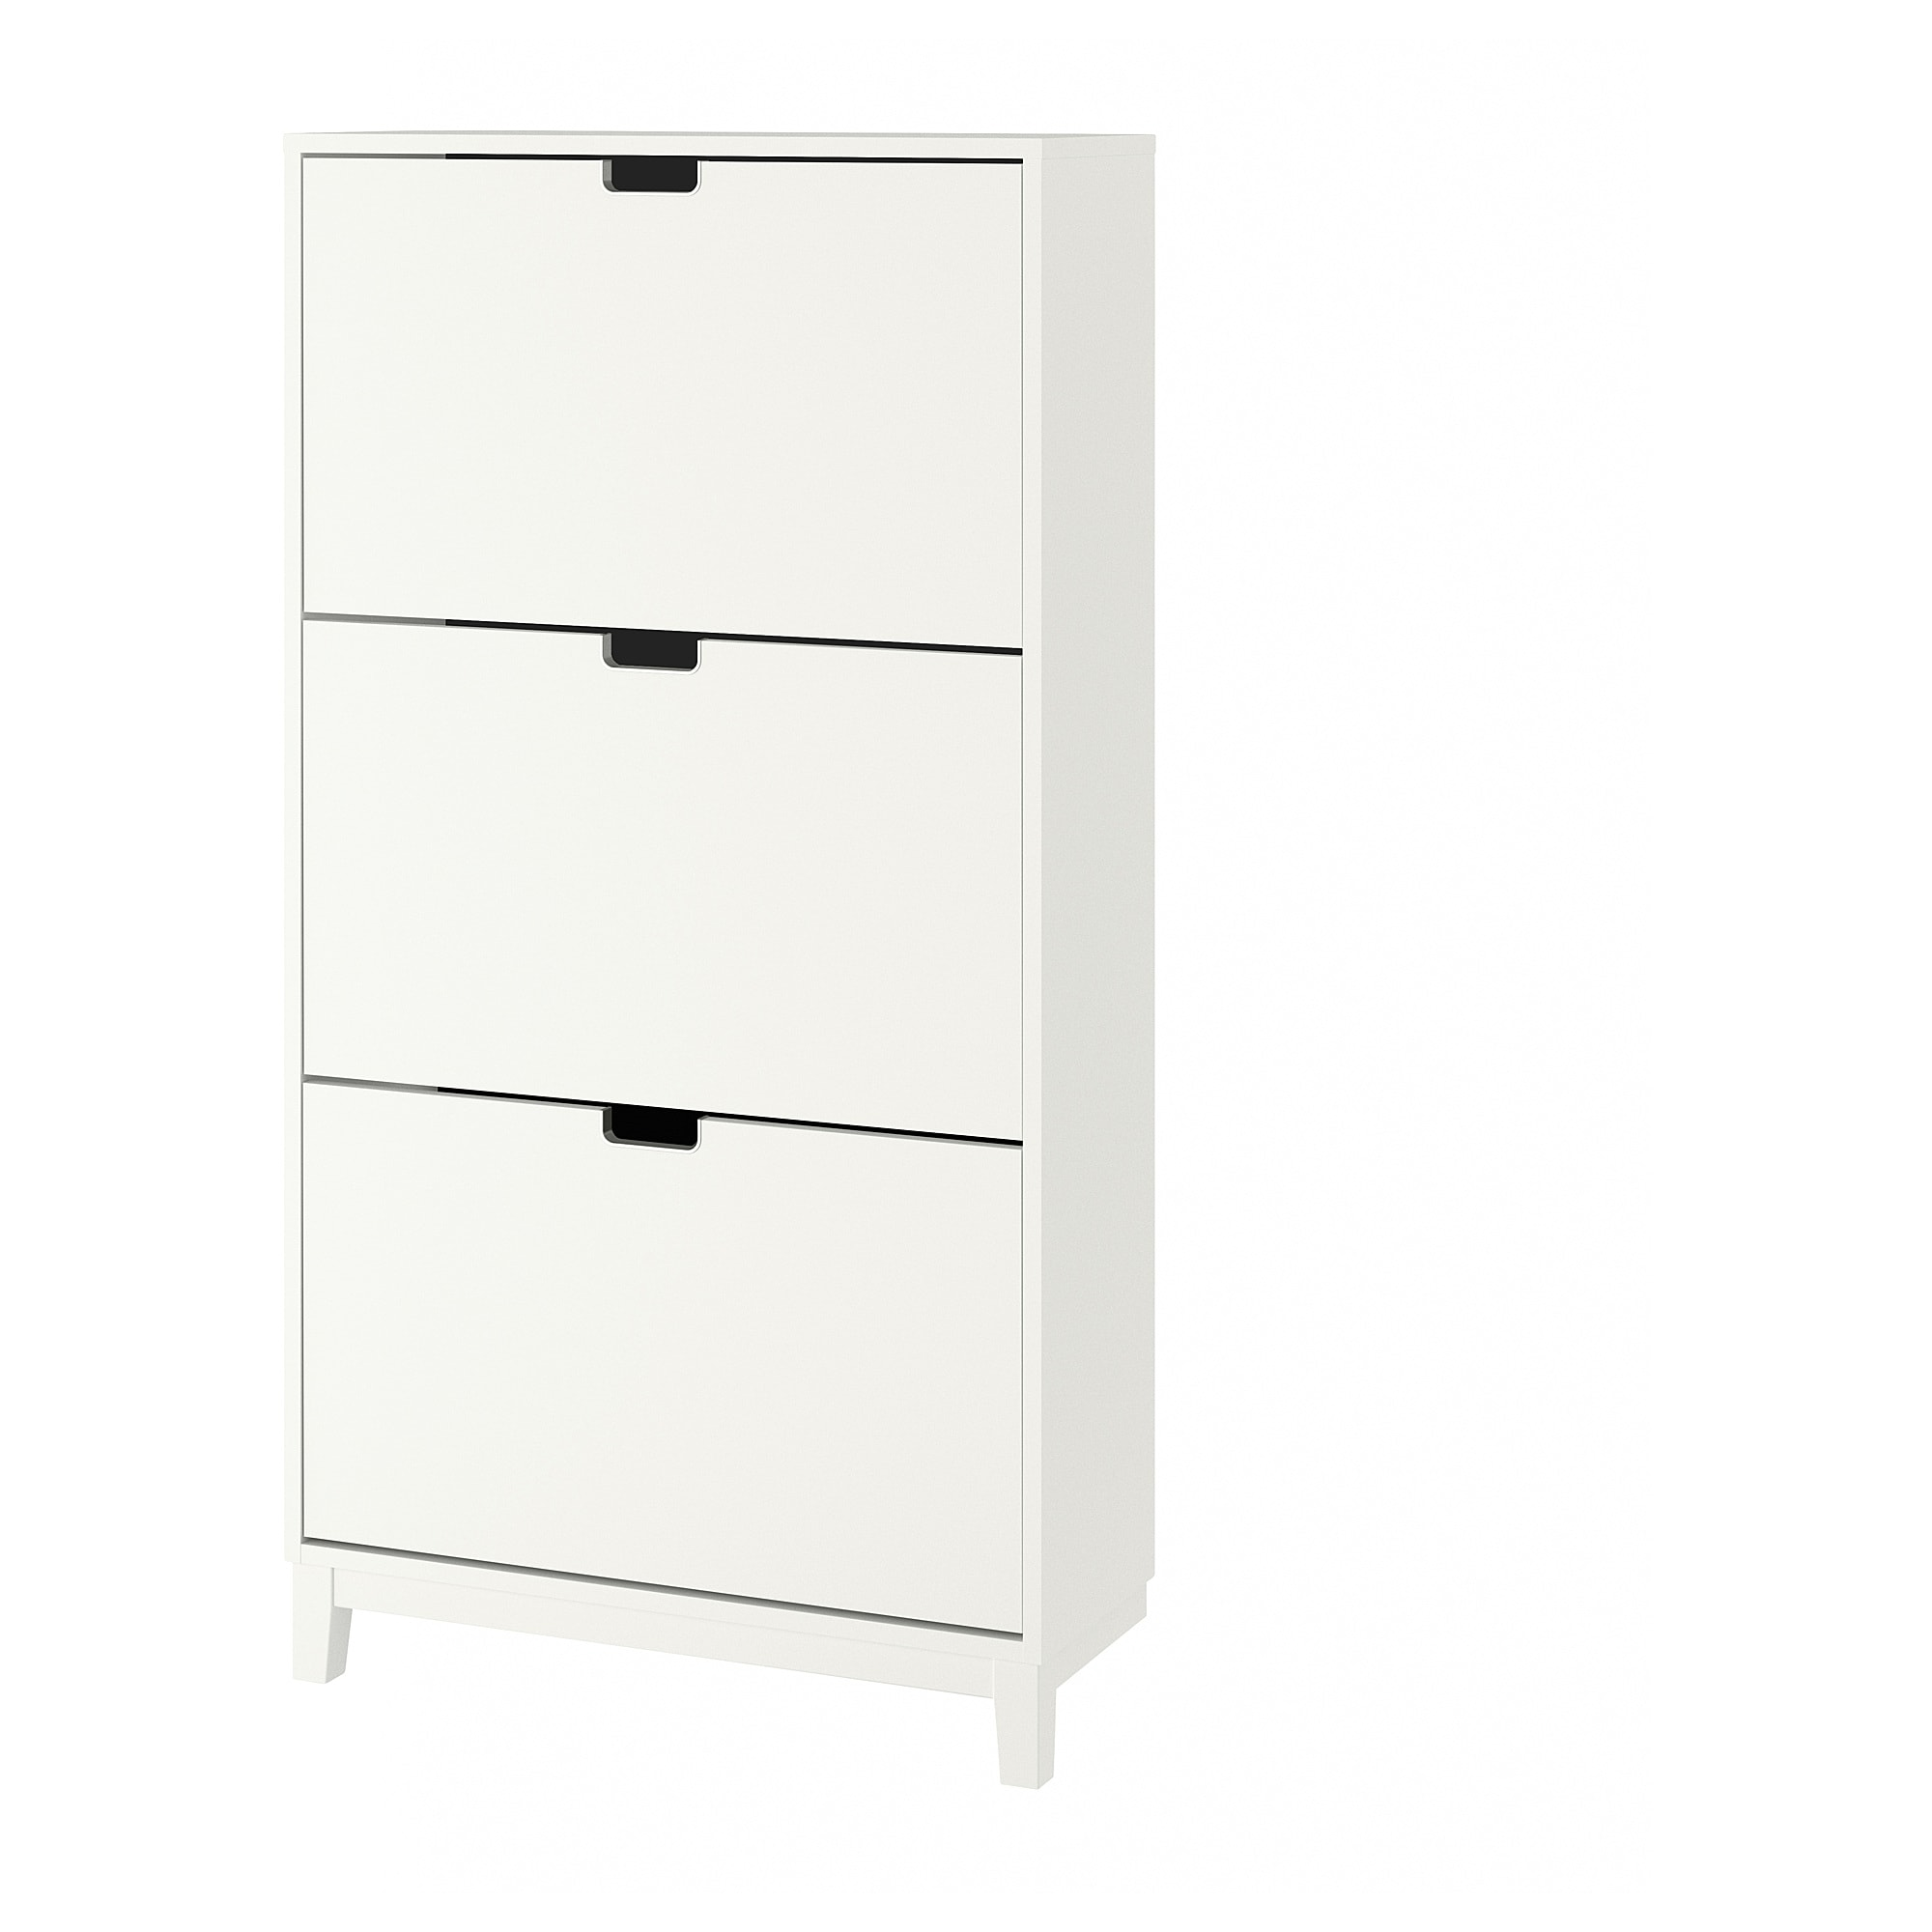 Armoire à chaussures 3 casiers STÄLL blanc